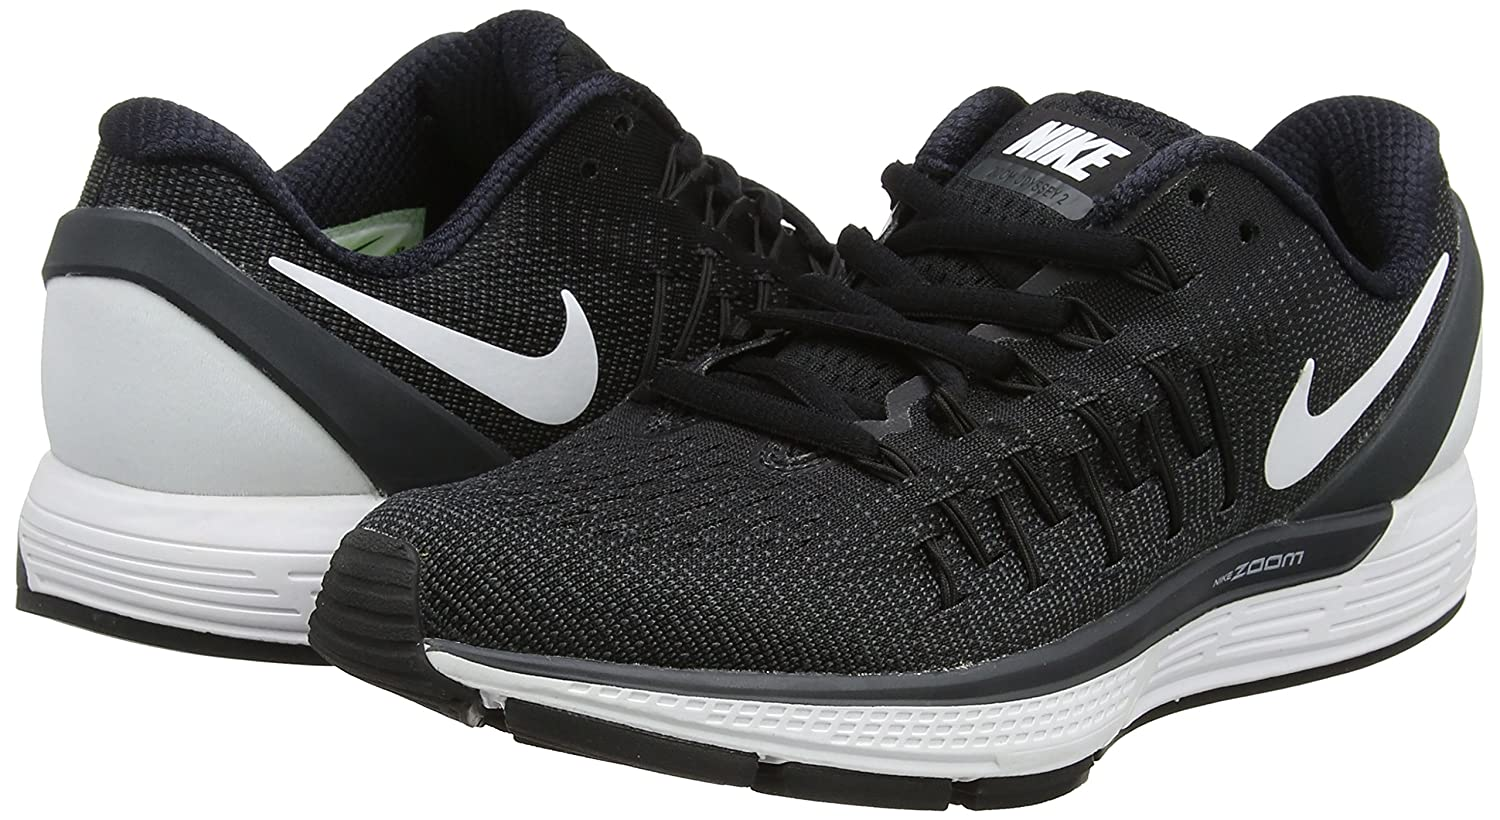 official photos 7c76f 56655 ... Nike Damen Wmns Air Zoom Zoom Zoom Odyssey 2 Laufschuhe c66f28